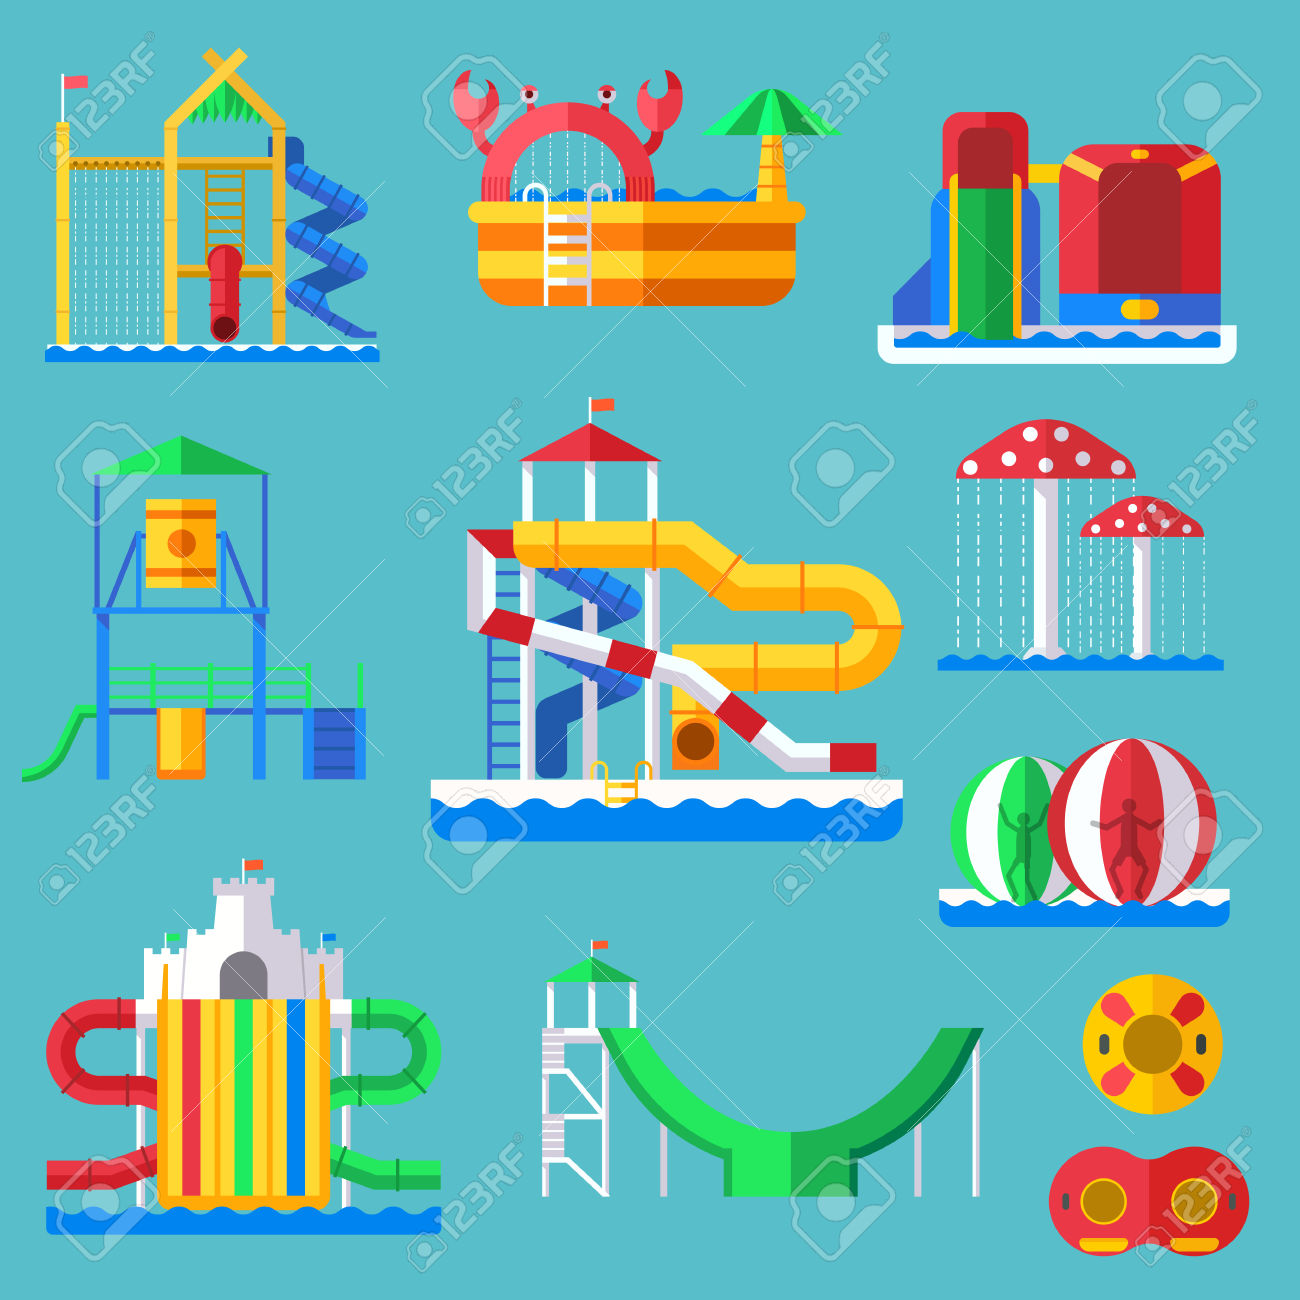 90 Aquapark Holiday Stock Vector Illustration And Royalty Free.